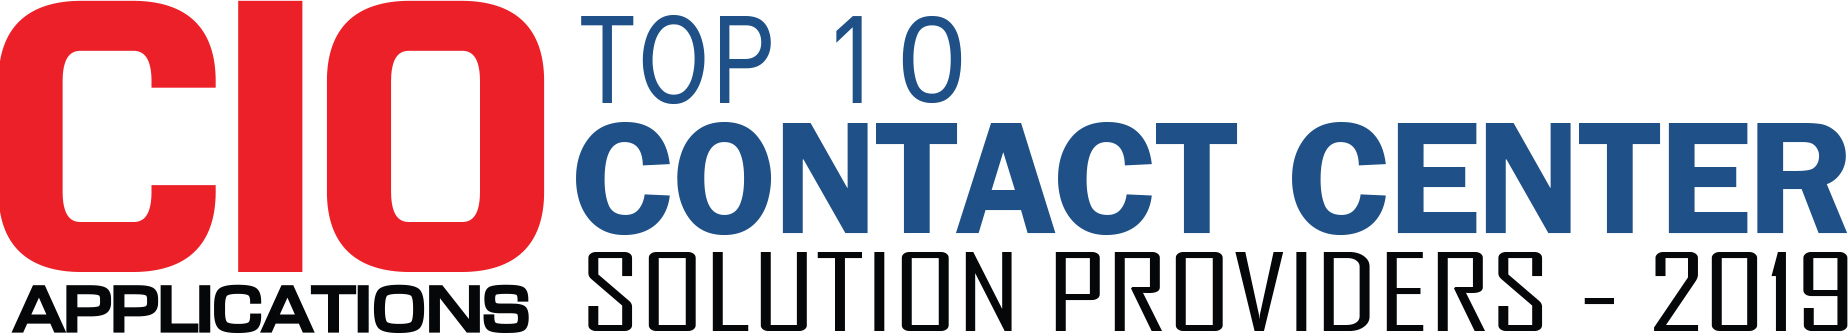 Top 10 Contact Center Solution Companies - 2019